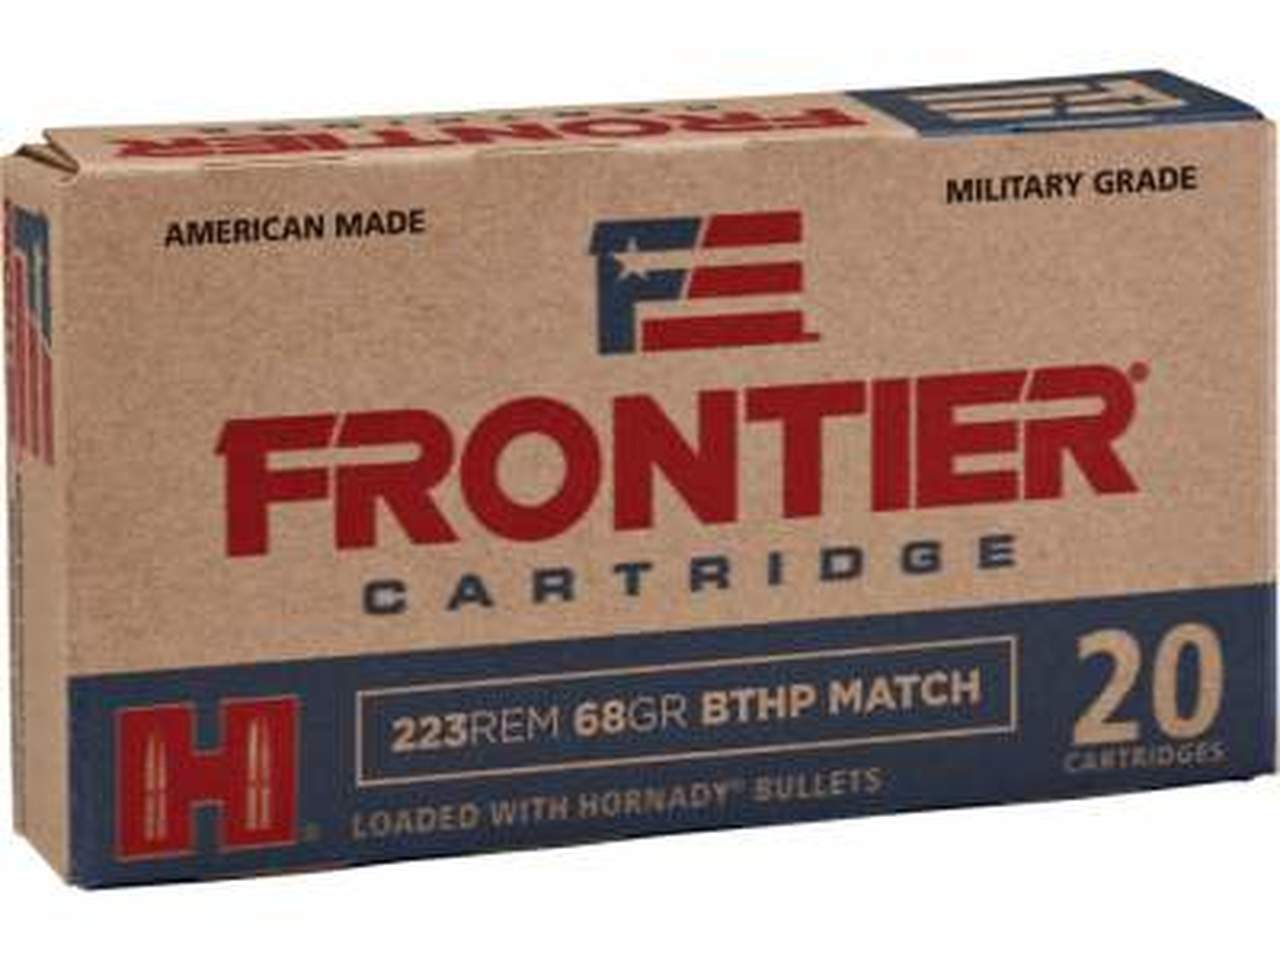 Hornady 5.56x45mm NATO Frontier M193 HFR200 55 gr FMJ 20 rounds